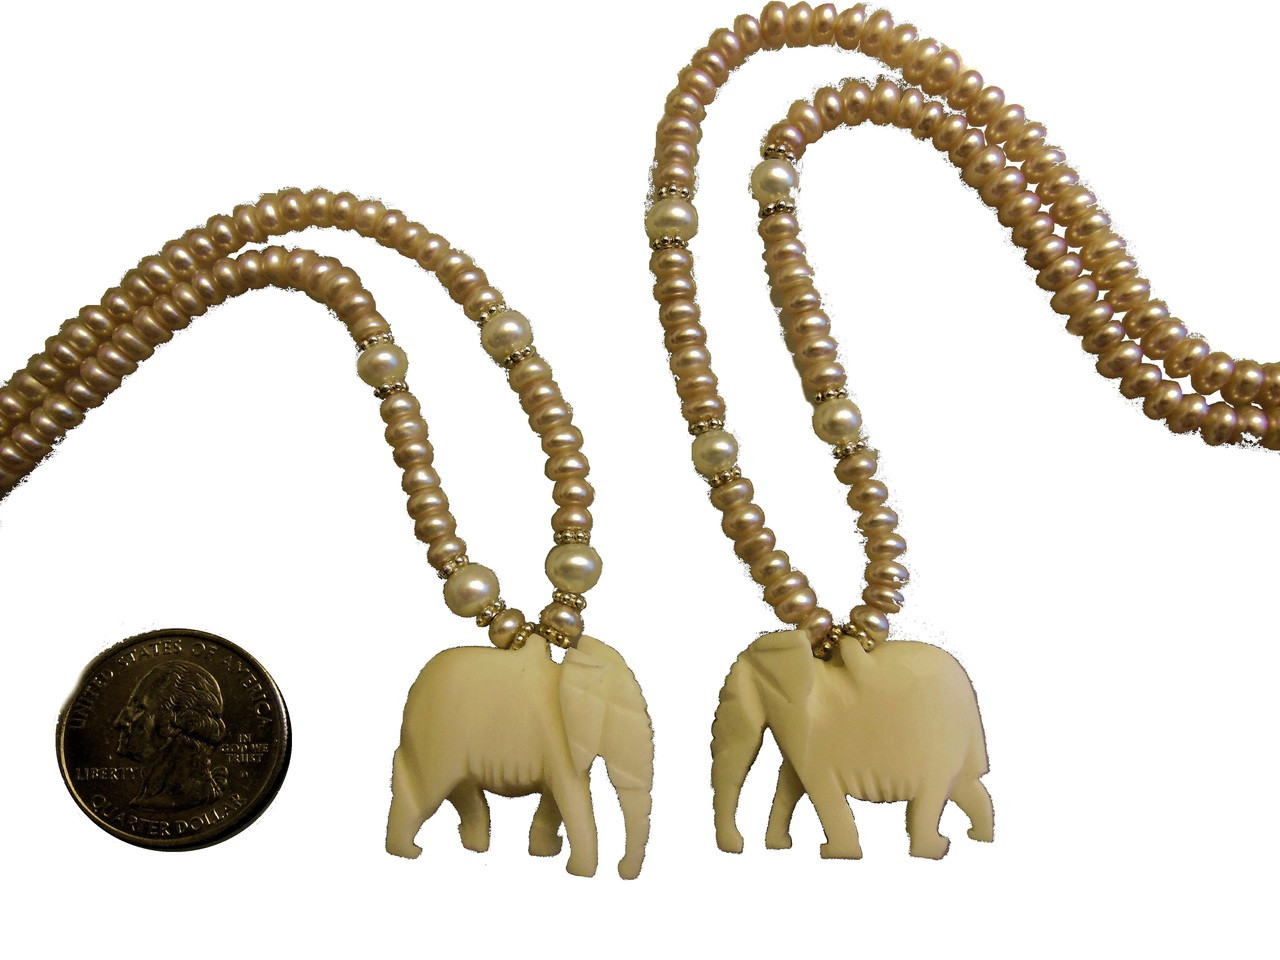 Carved Bone Elephant from Kenya on peach freshwater pearls from China.